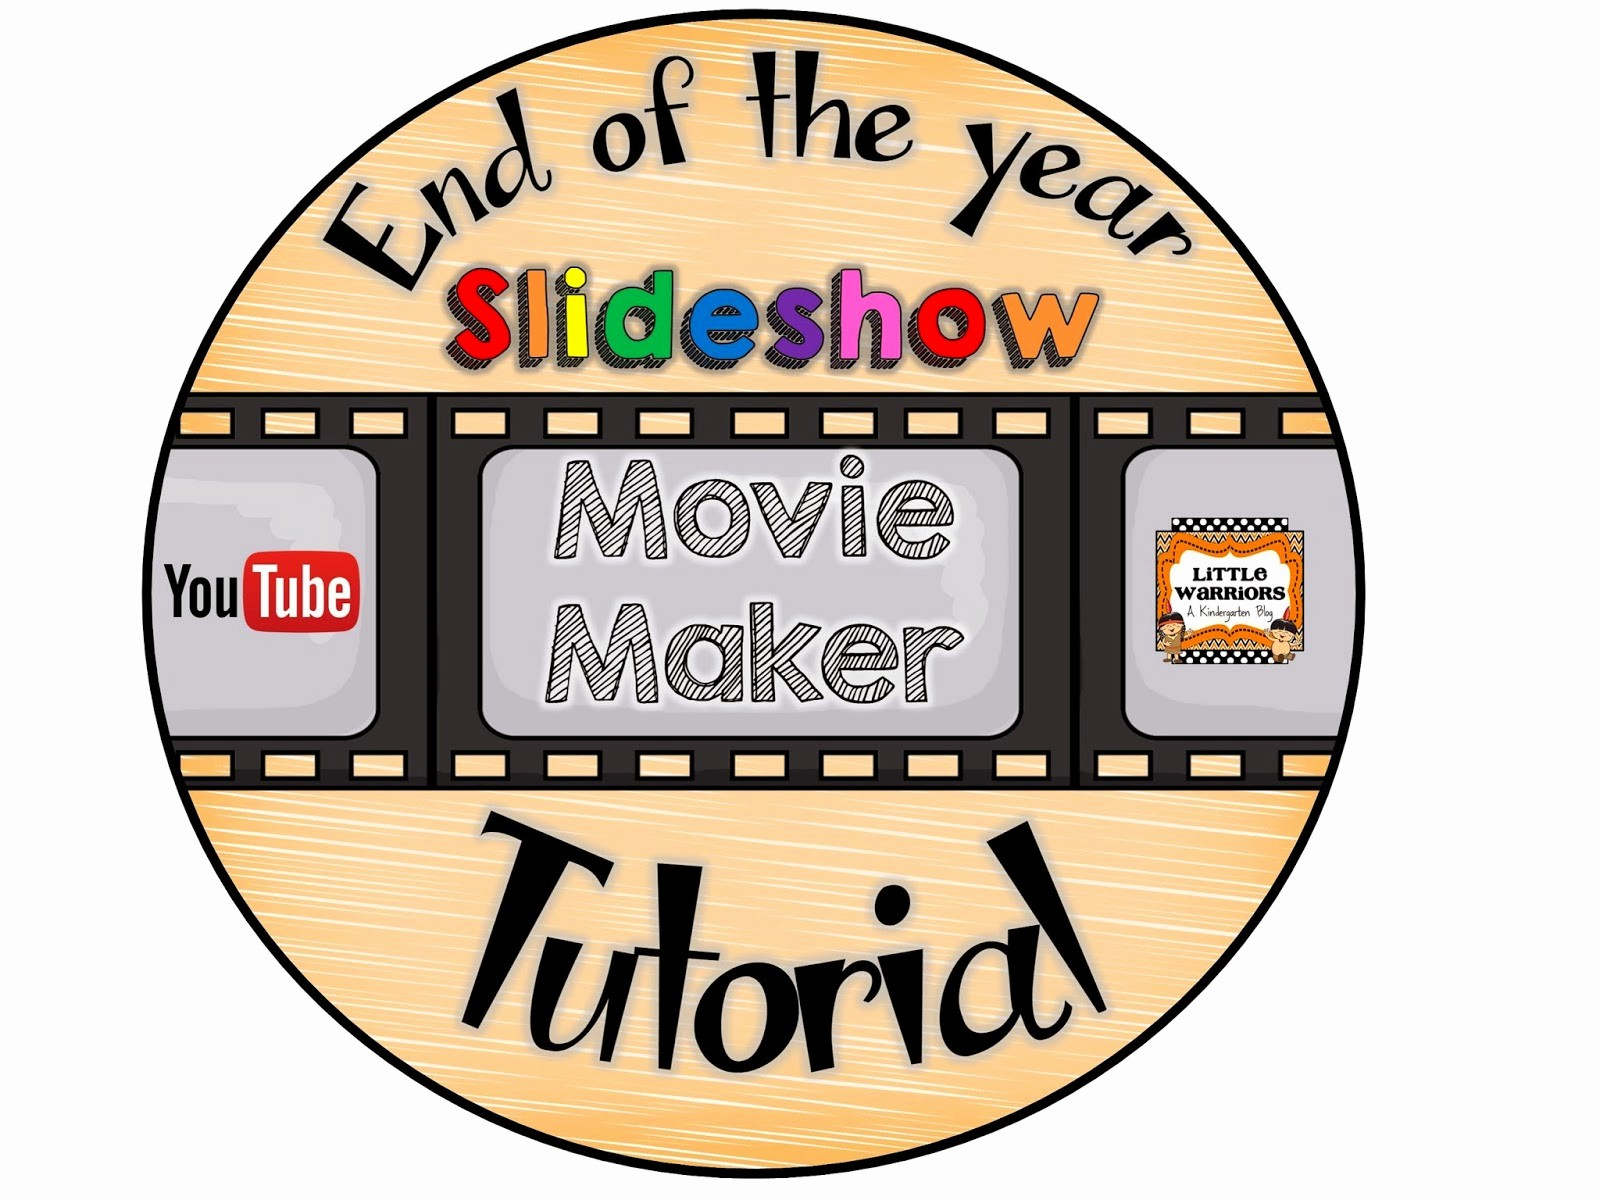 End Of the Year Slideshow Awesome End Of the Year Slideshow Title Slides Music Tutorial